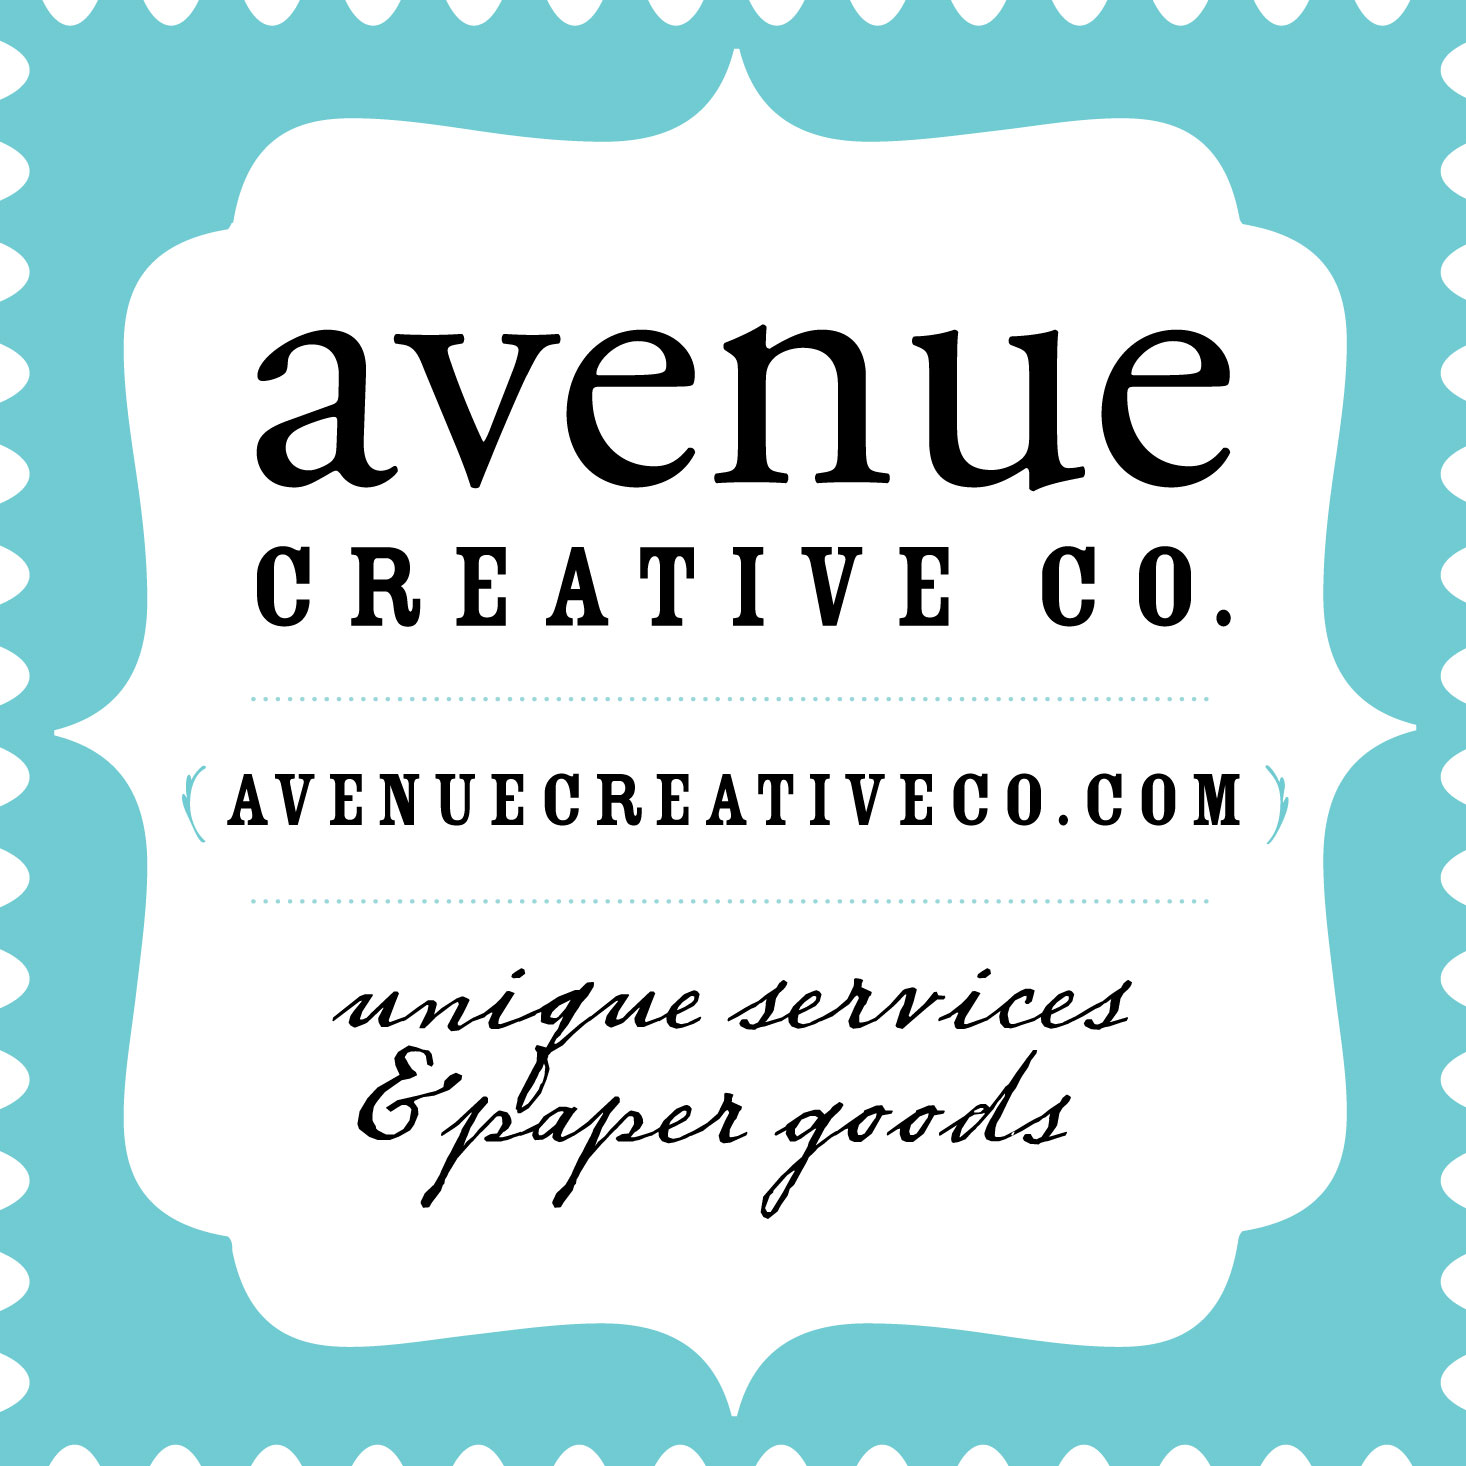 Avenue Creative Co.